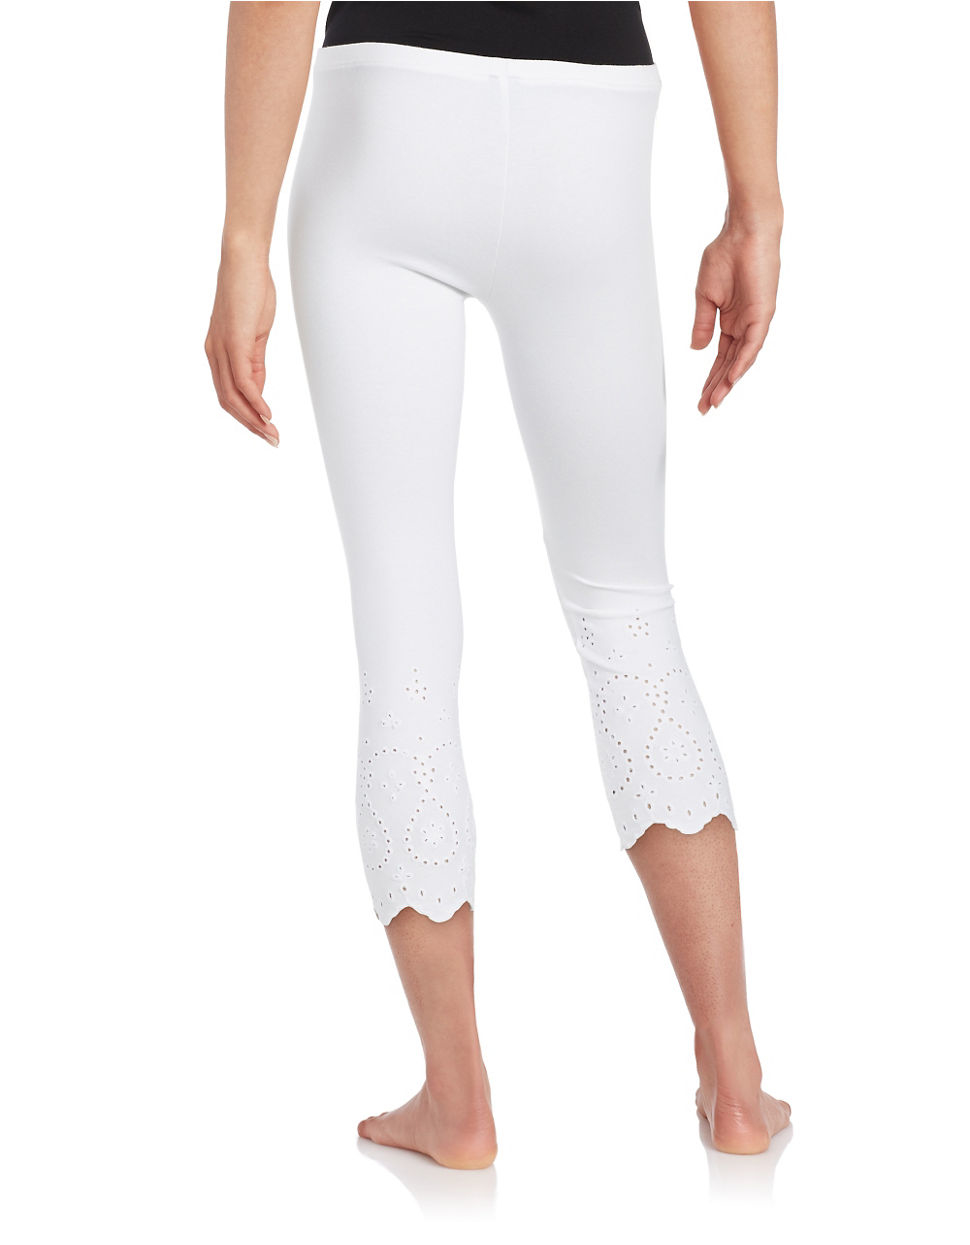 6537128ce768 White Cotton Capri Leggings - Hardon Clothes